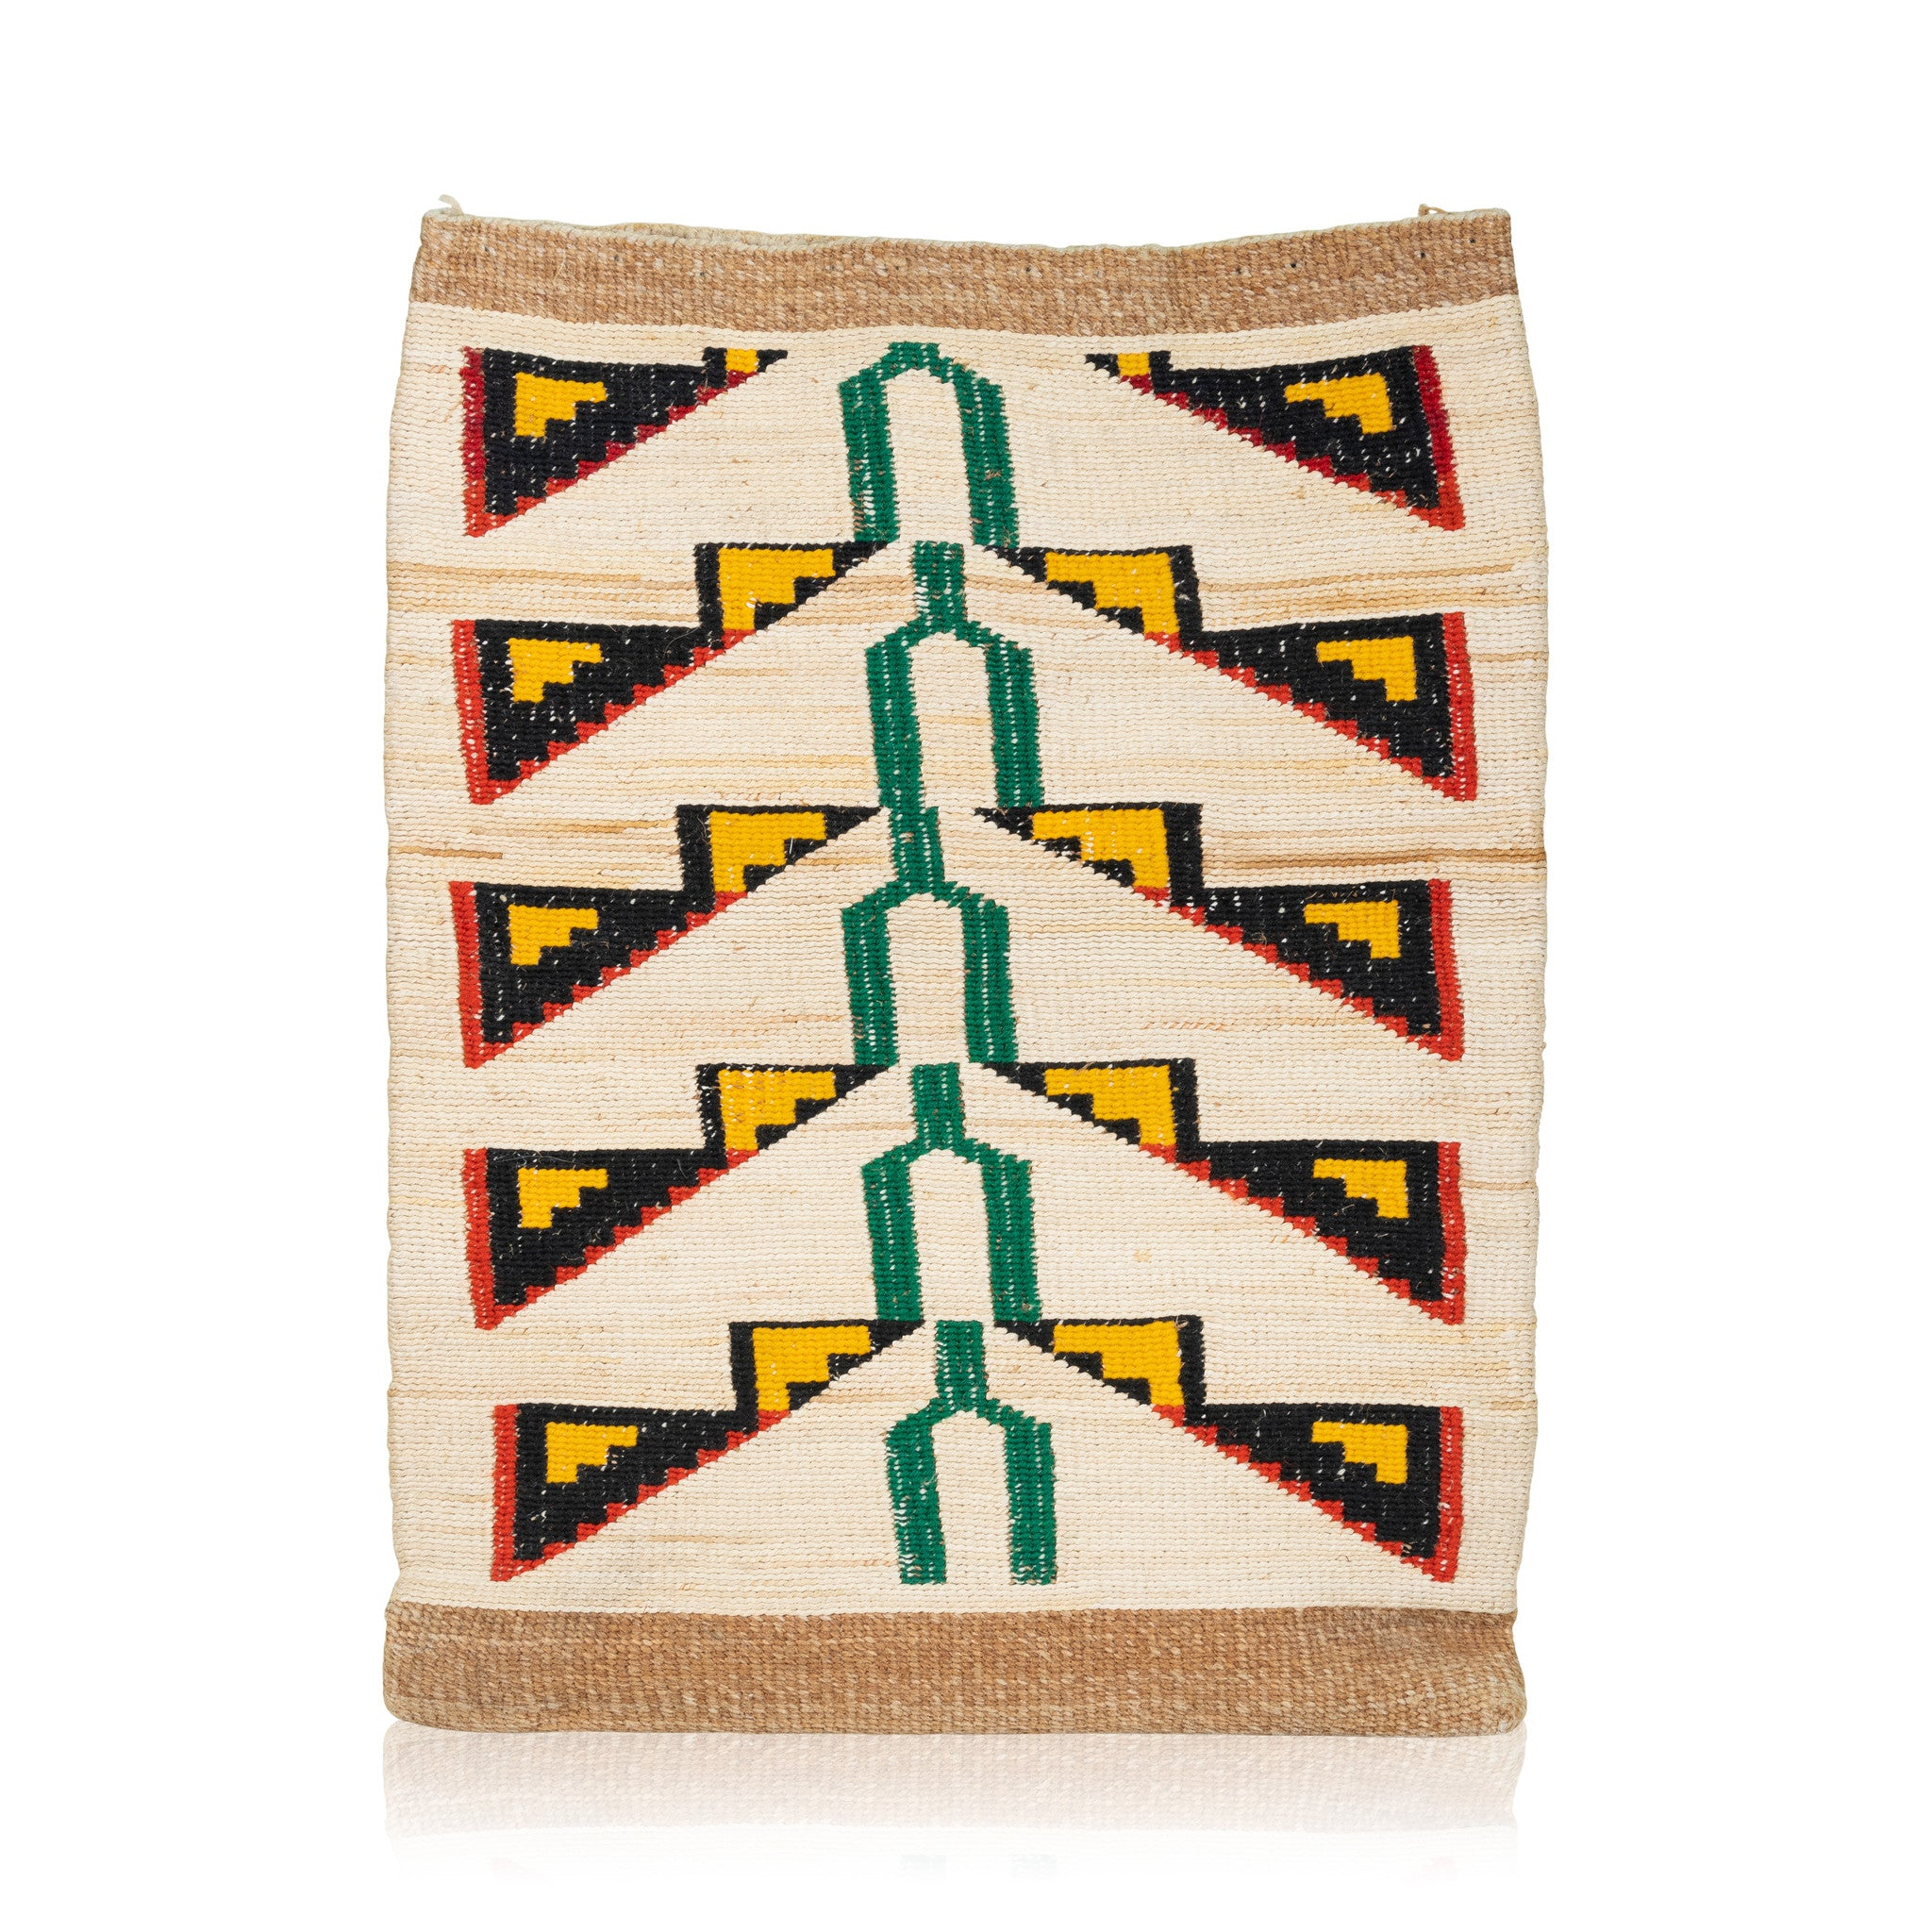 Nez Perce Corn Husk Bag corn husk bags, corn husks, nez perce